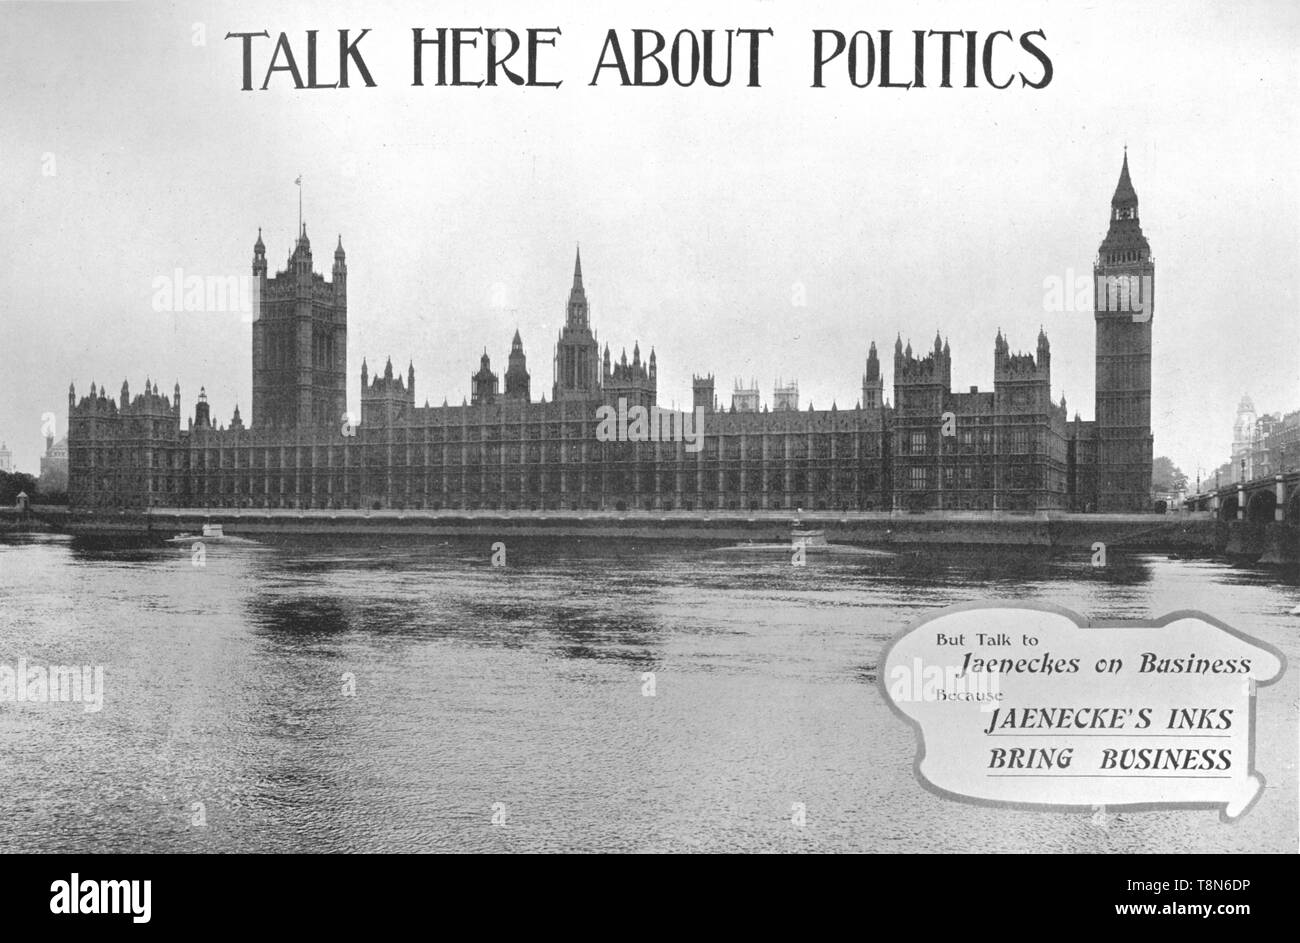 """'Talk Here About Politics - Jaenecke's Inks advertisement', 1909. From """"The British Printer Vol. XXII"""". [Raithby, Lawrence & Co., Ltd, London and Leicester, 1909] - Stock Image"""